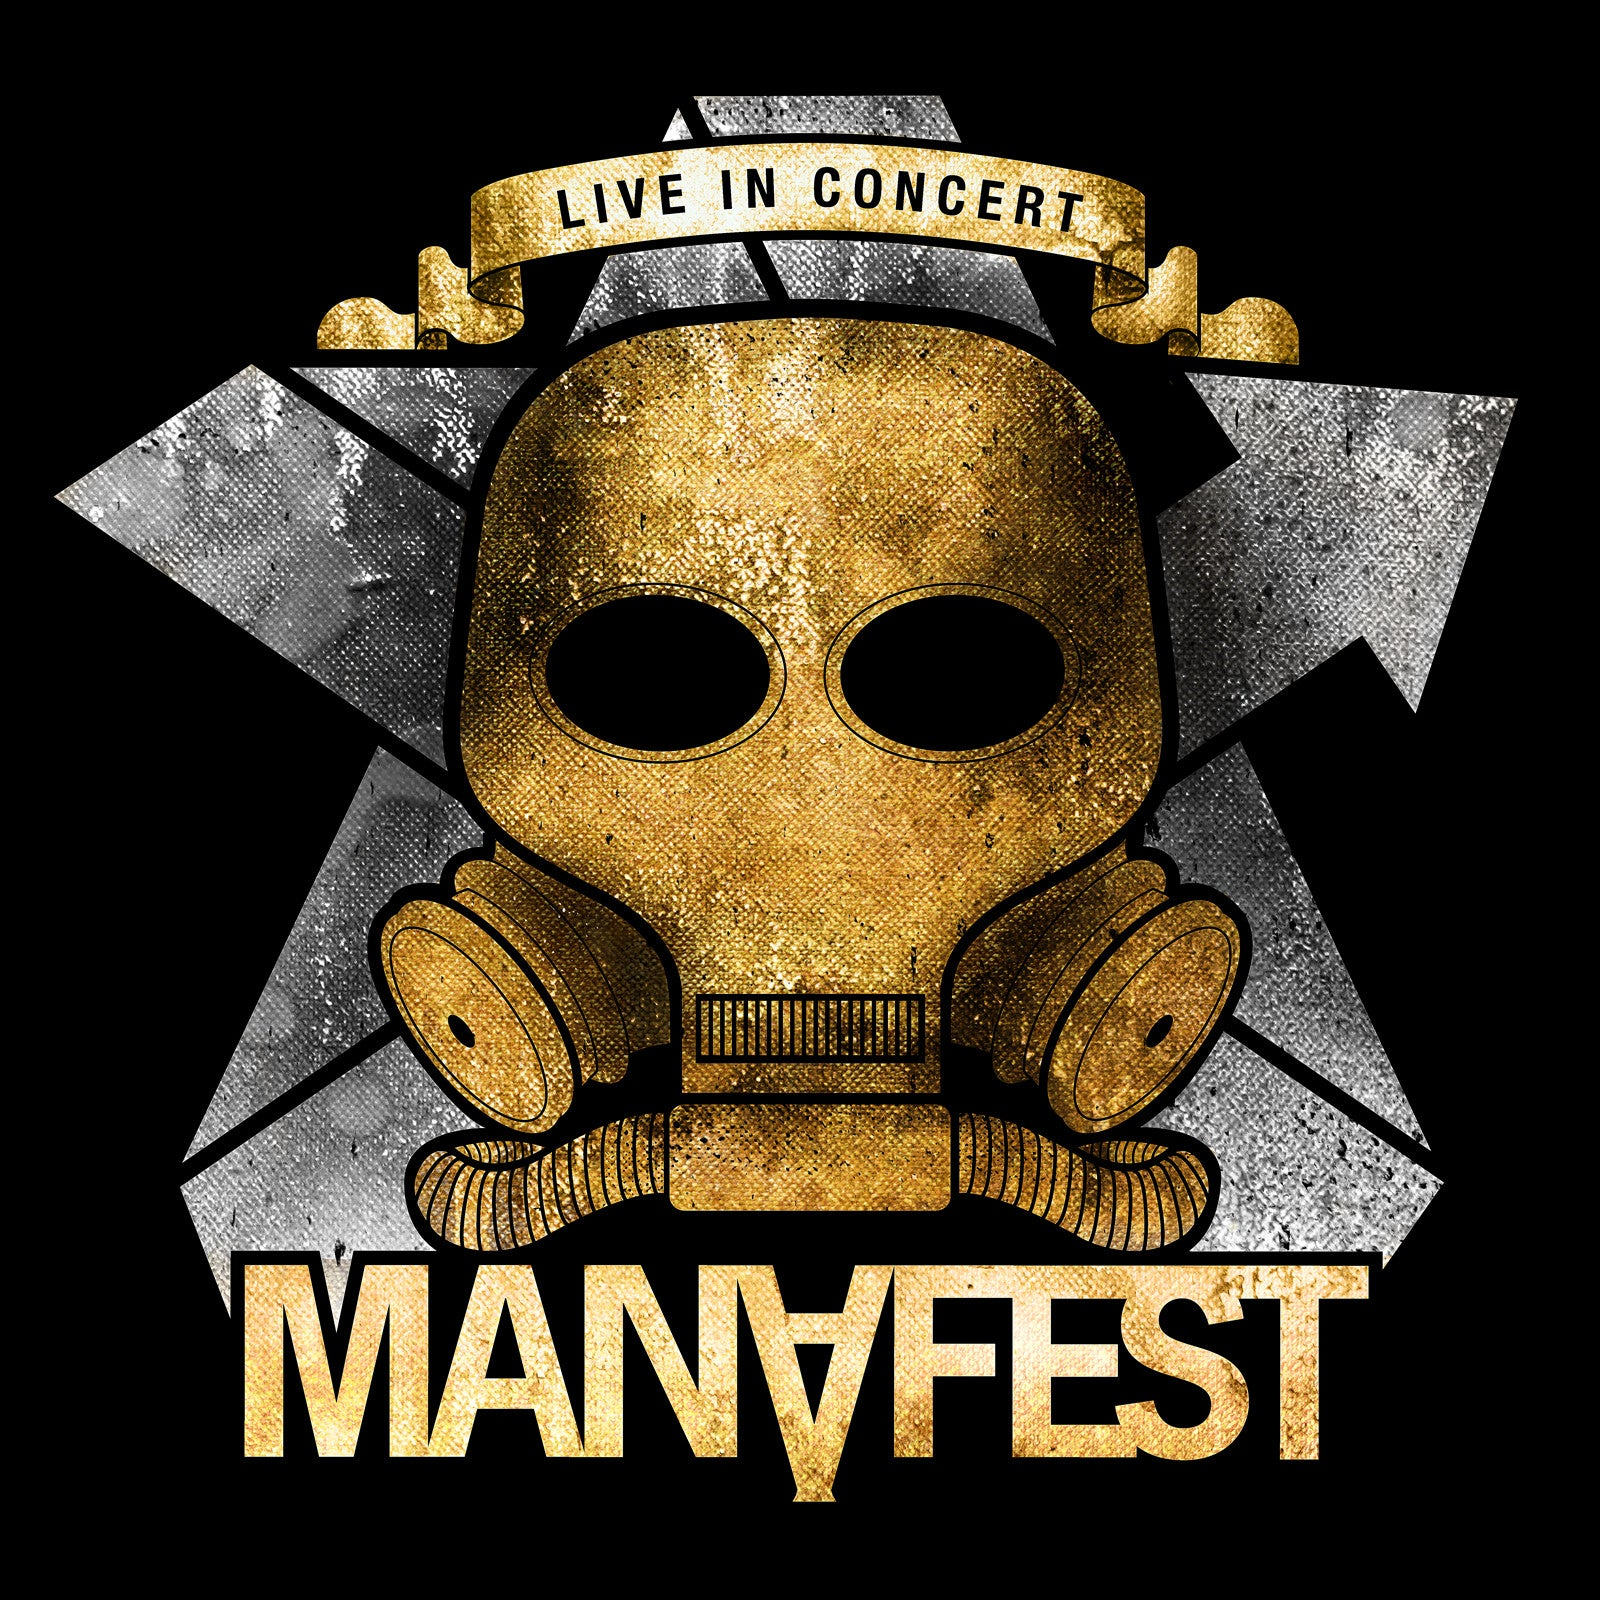 Manafest Live In Concert CD/DVD (digital download)